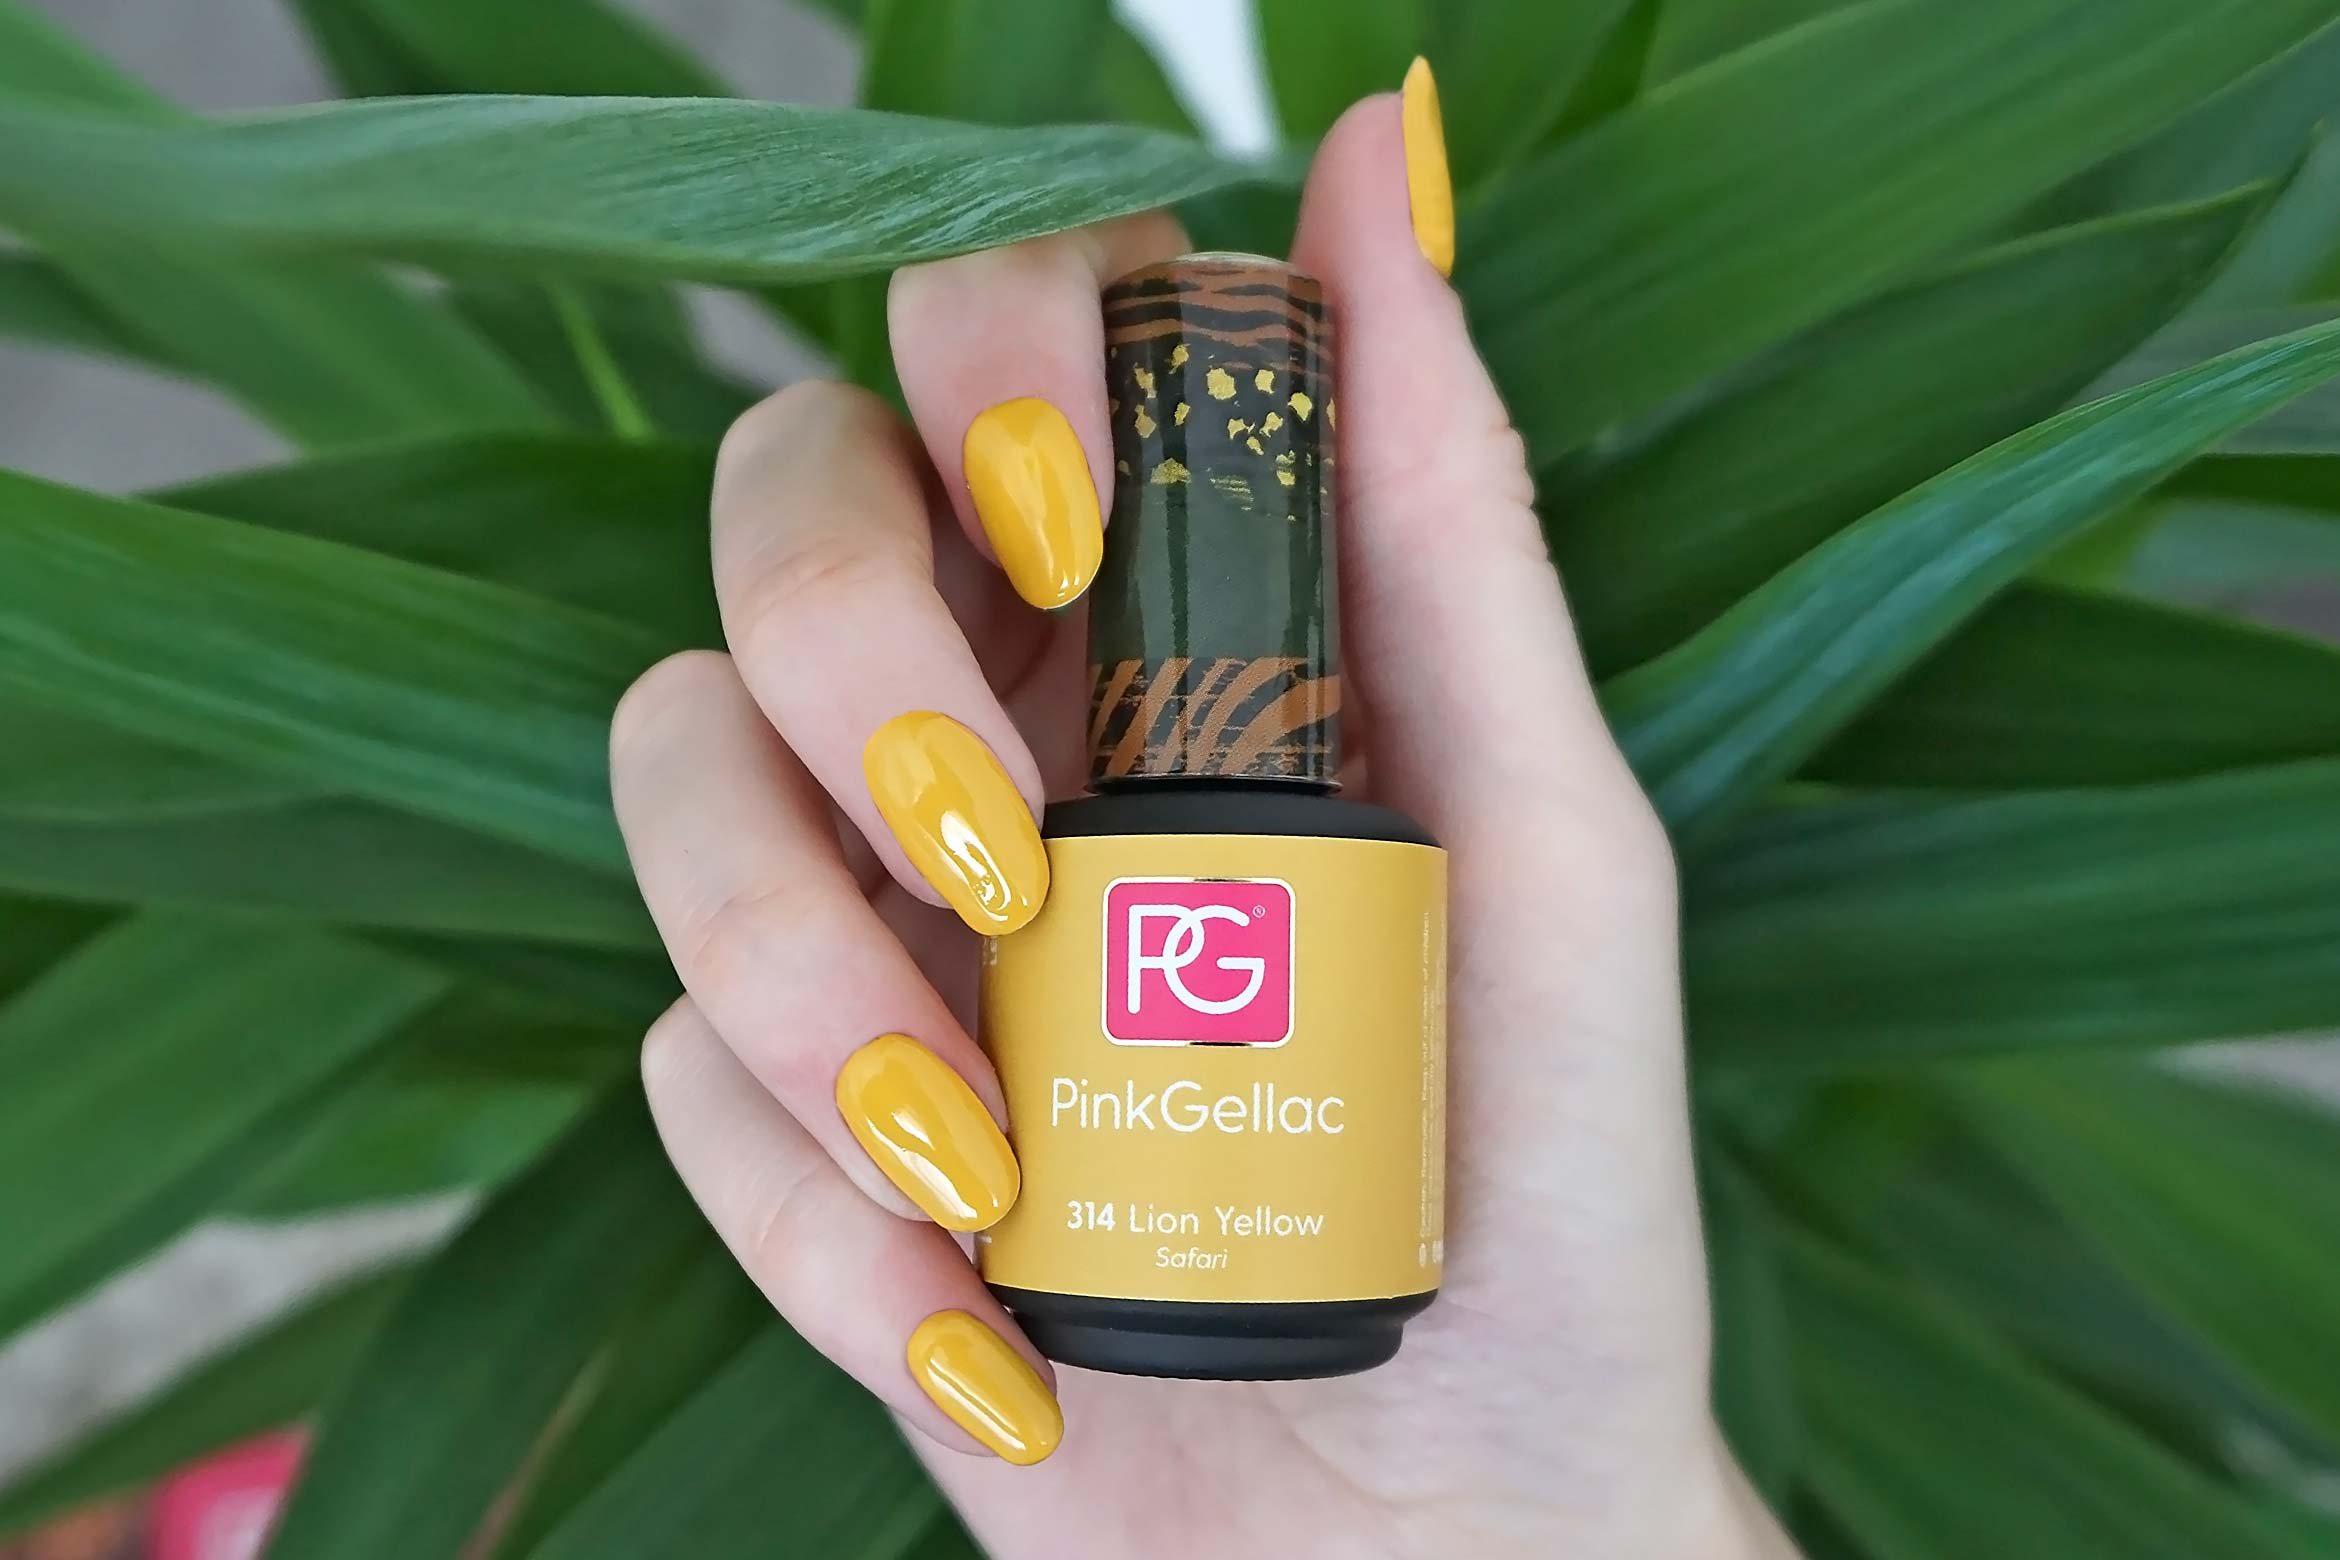 pink gellac 314 lion yellow swatch